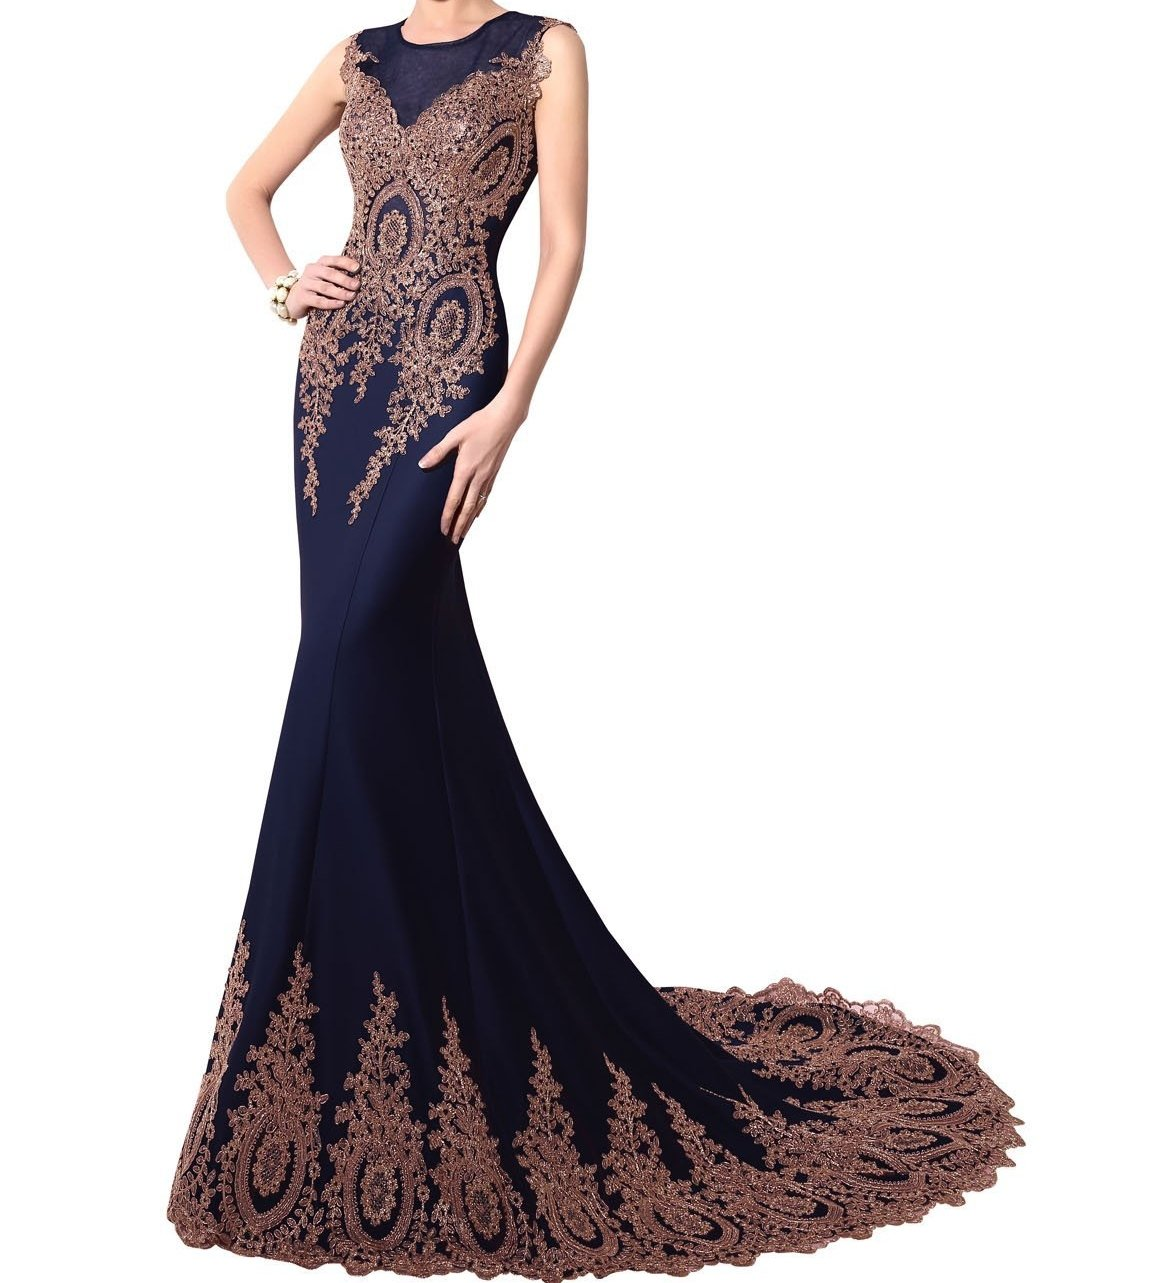 Kings Love Womens Mermaid Evening Dress Velvet Lace Embroidery Sleeveless Prom Gowns